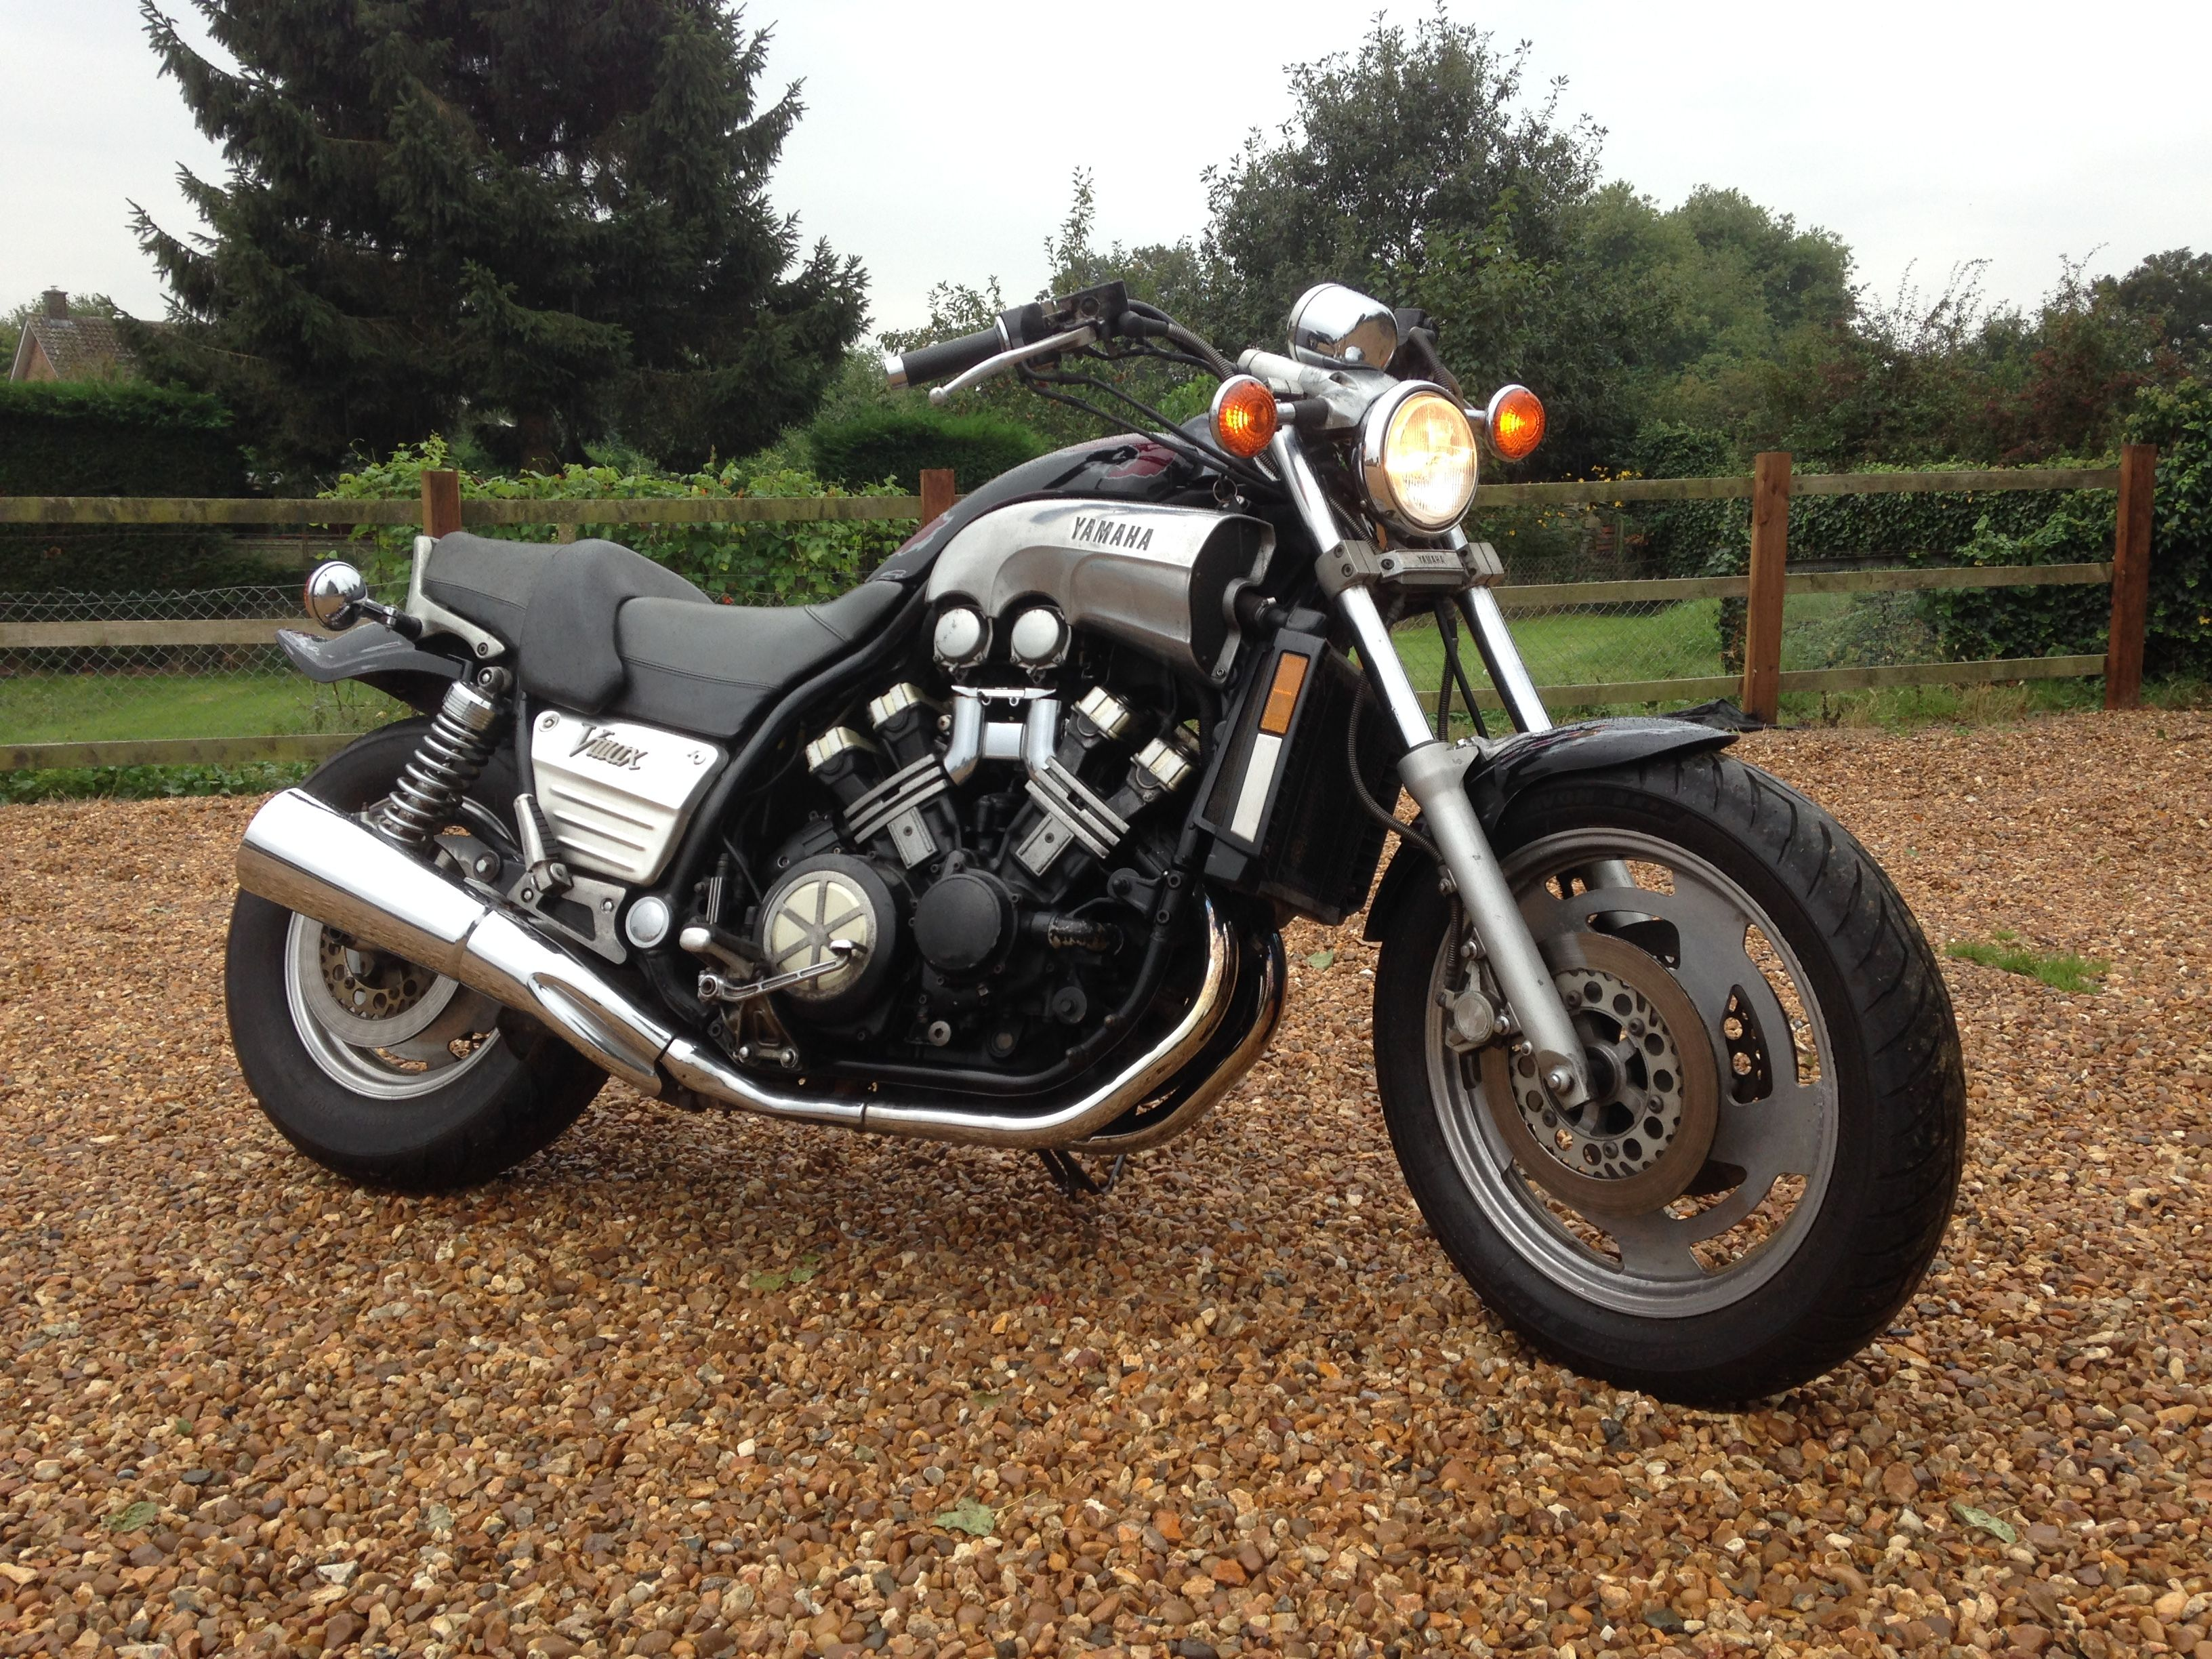 Yamaha Vmax custom build